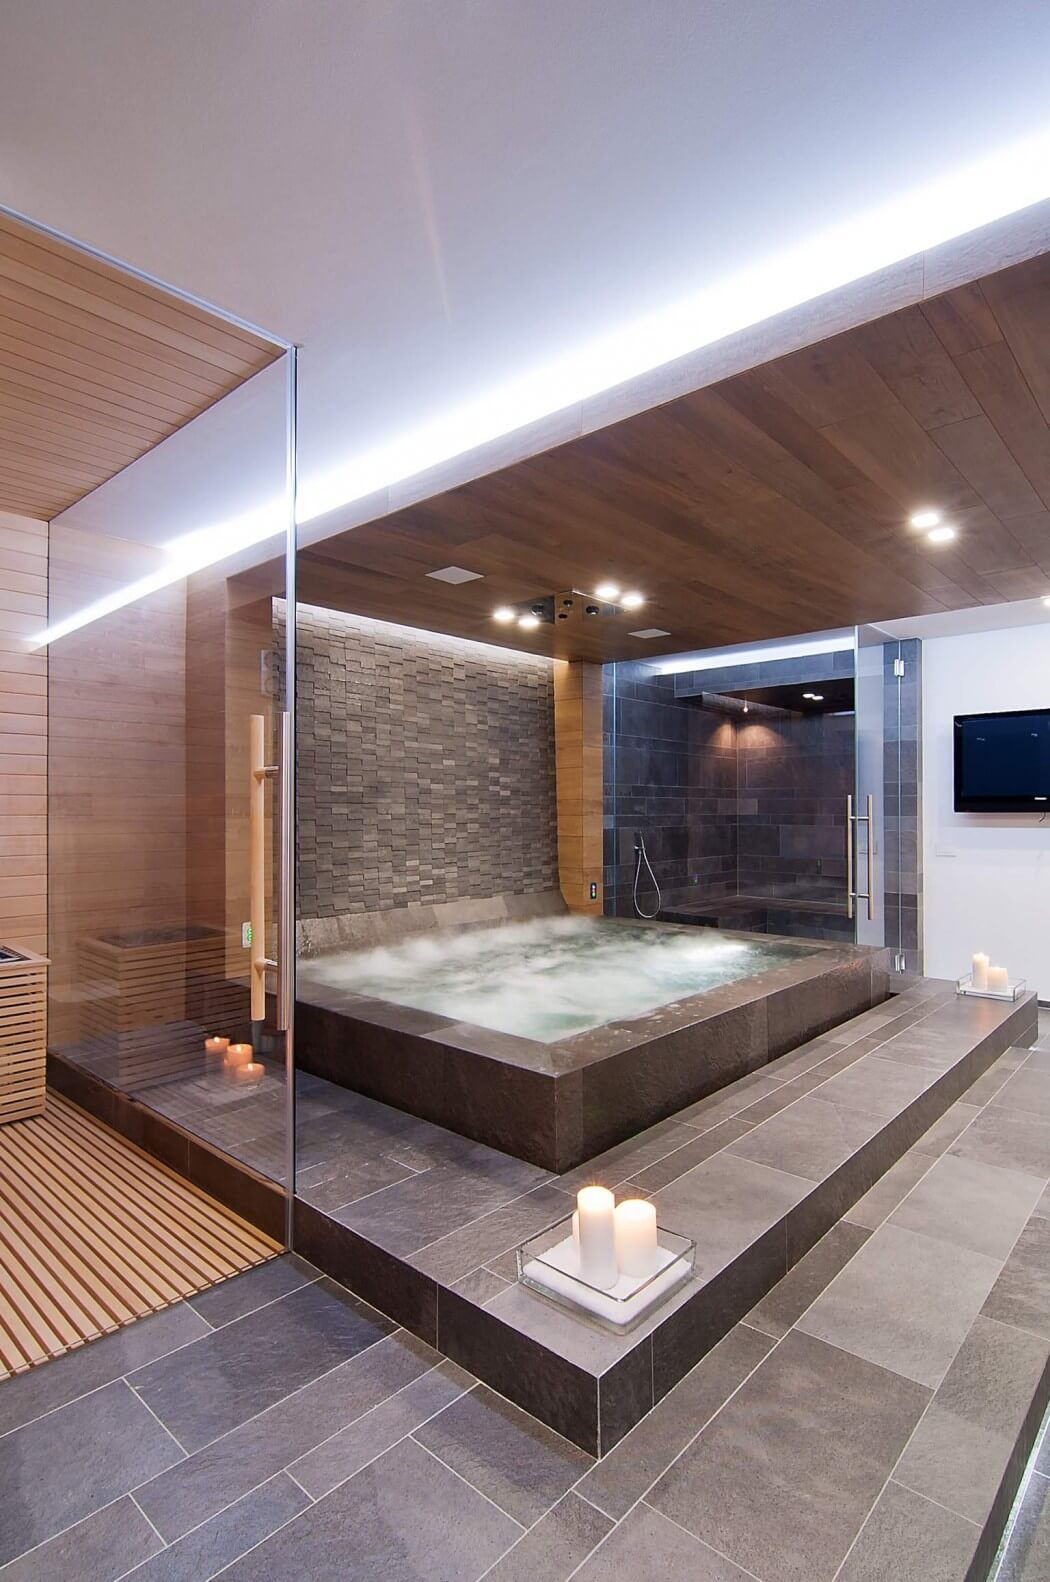 Bathroom Jacuzzi luxury homestimamiglio | interior | pinterest | luxury